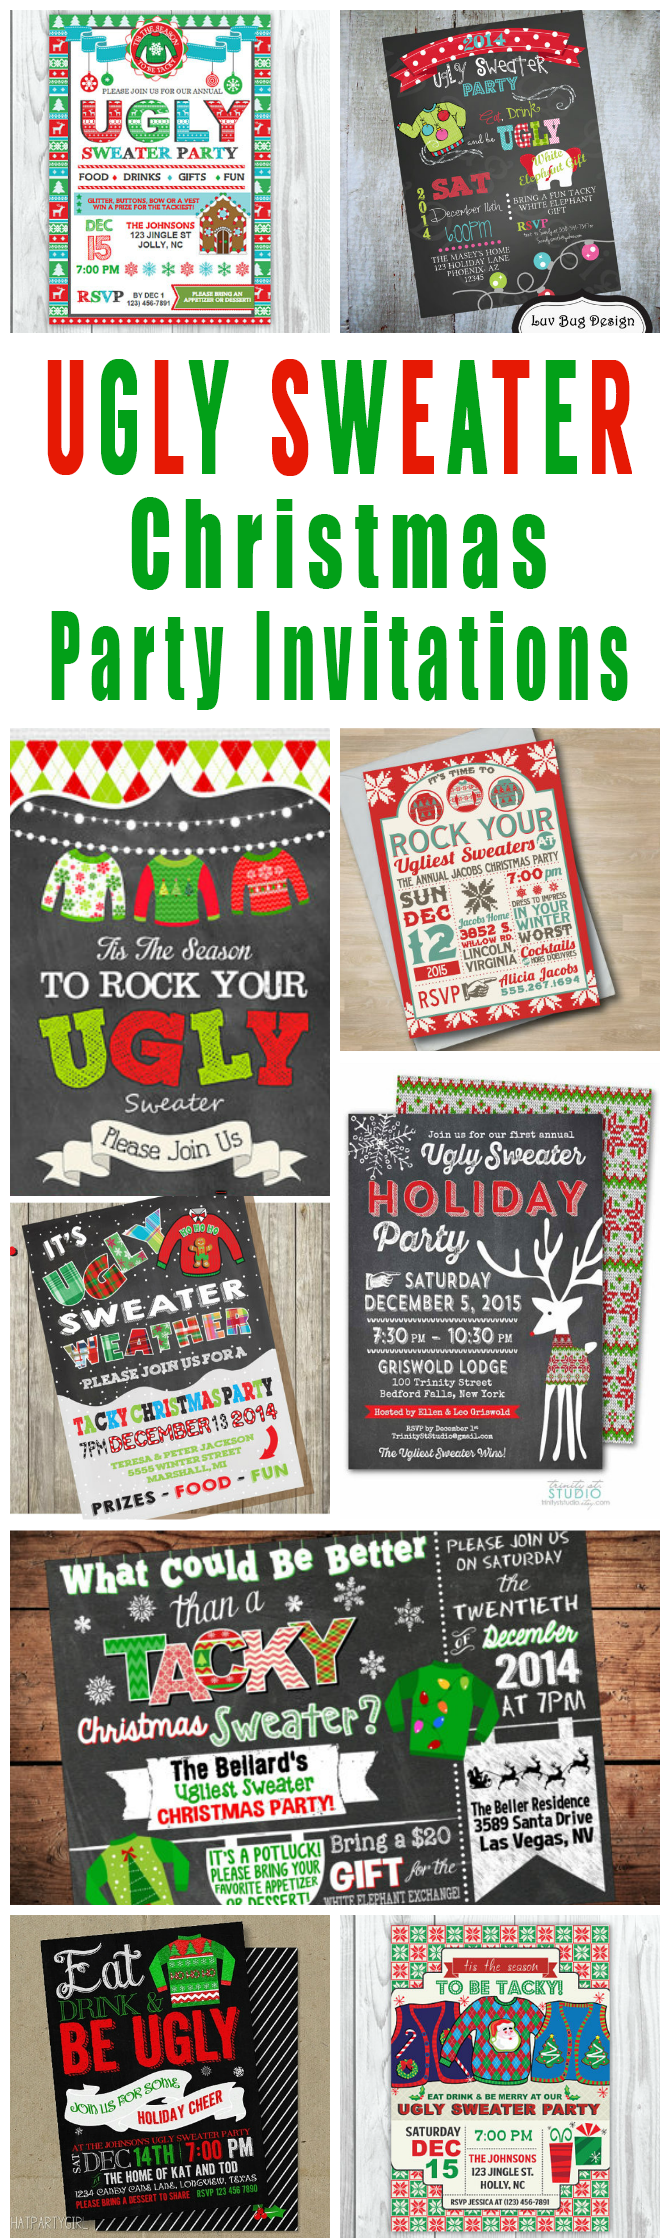 Office christmas party best images collections - A Tacky Collection Of Ugly Christmas Sweater Party Invitations And Other Ugly Sweater Christmas Party Printables